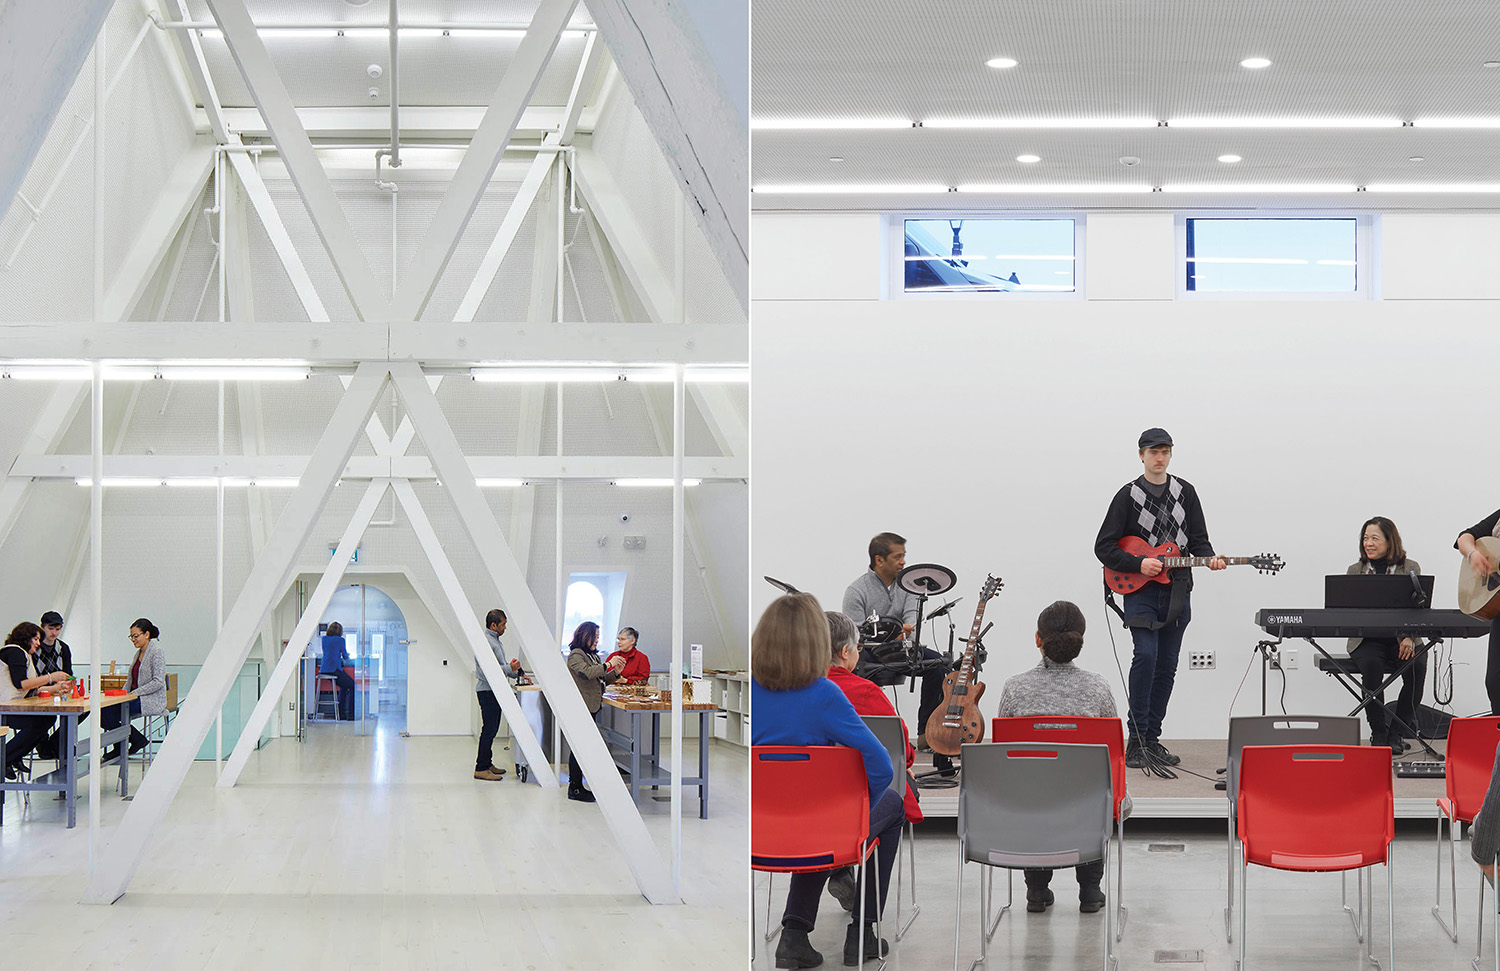 The attic retains the historic structure's original star-shaped steel trusses, and now serves as the Makerspace. The lower level accommodates creative studios and performance spaces. Tom Arban